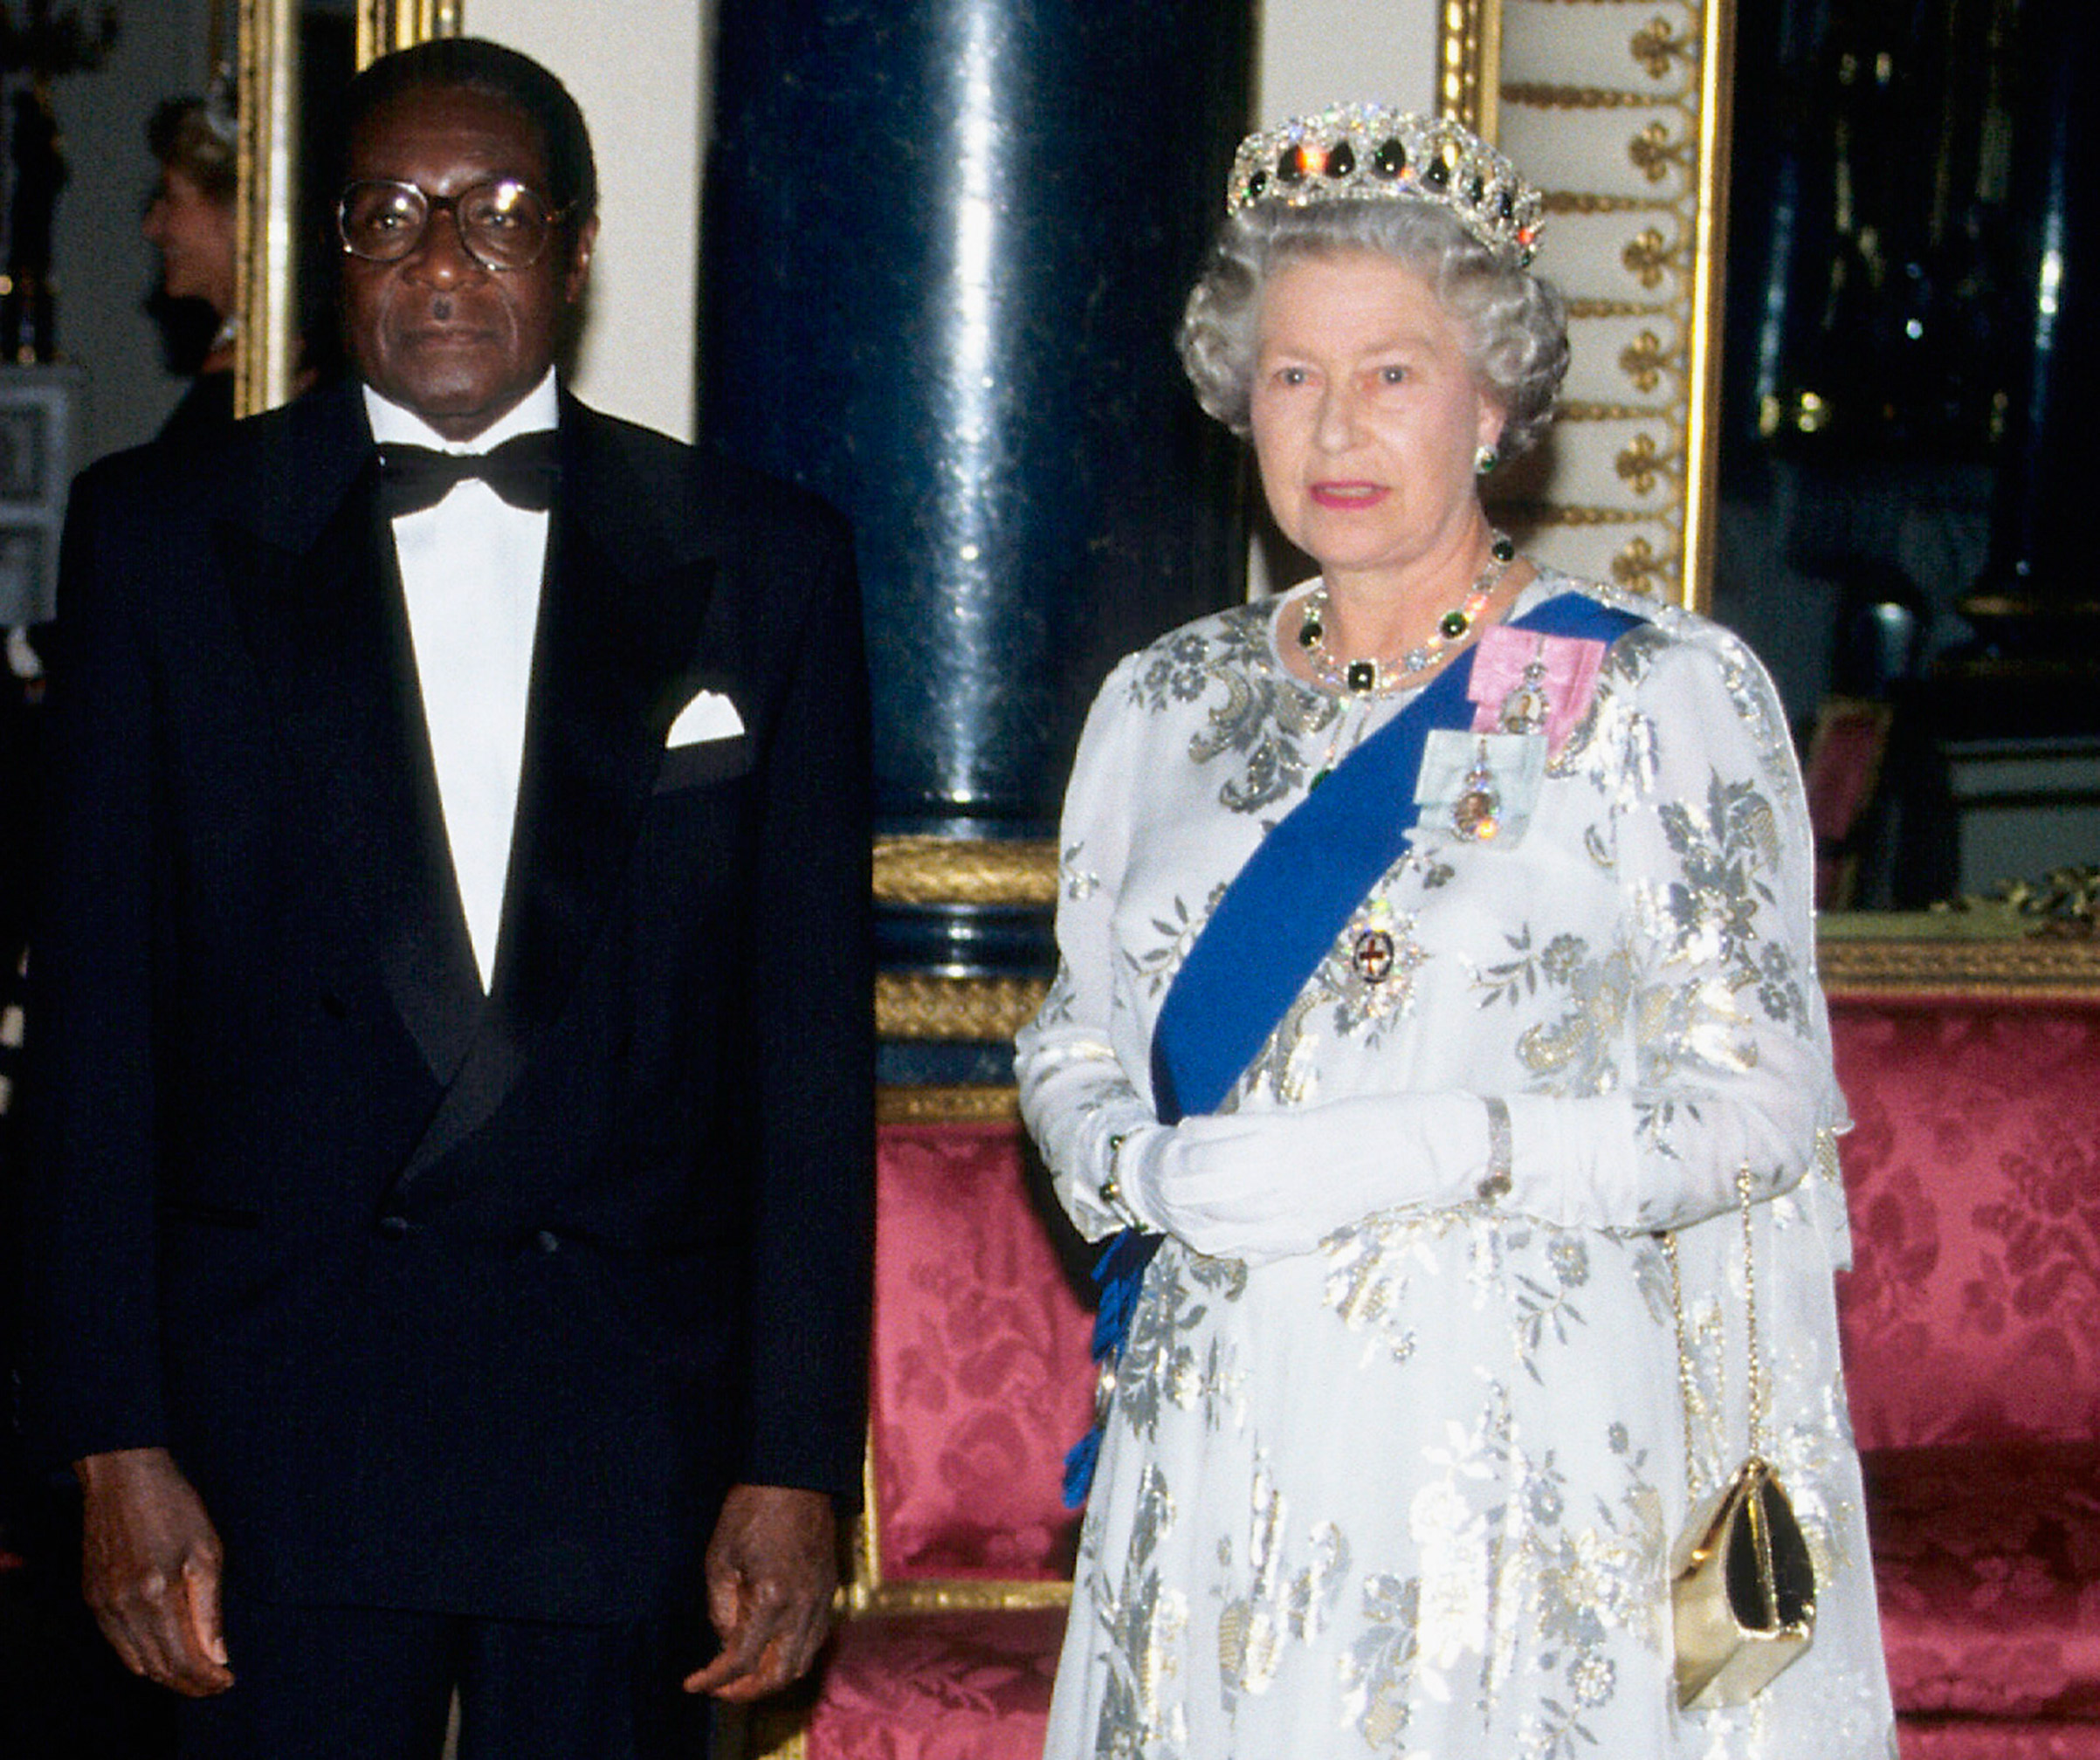 President Robert Mugabe of Zimbabwe and Queen Elizabeth ll at Buckingham Palace, London, during his state visit in May 1994.